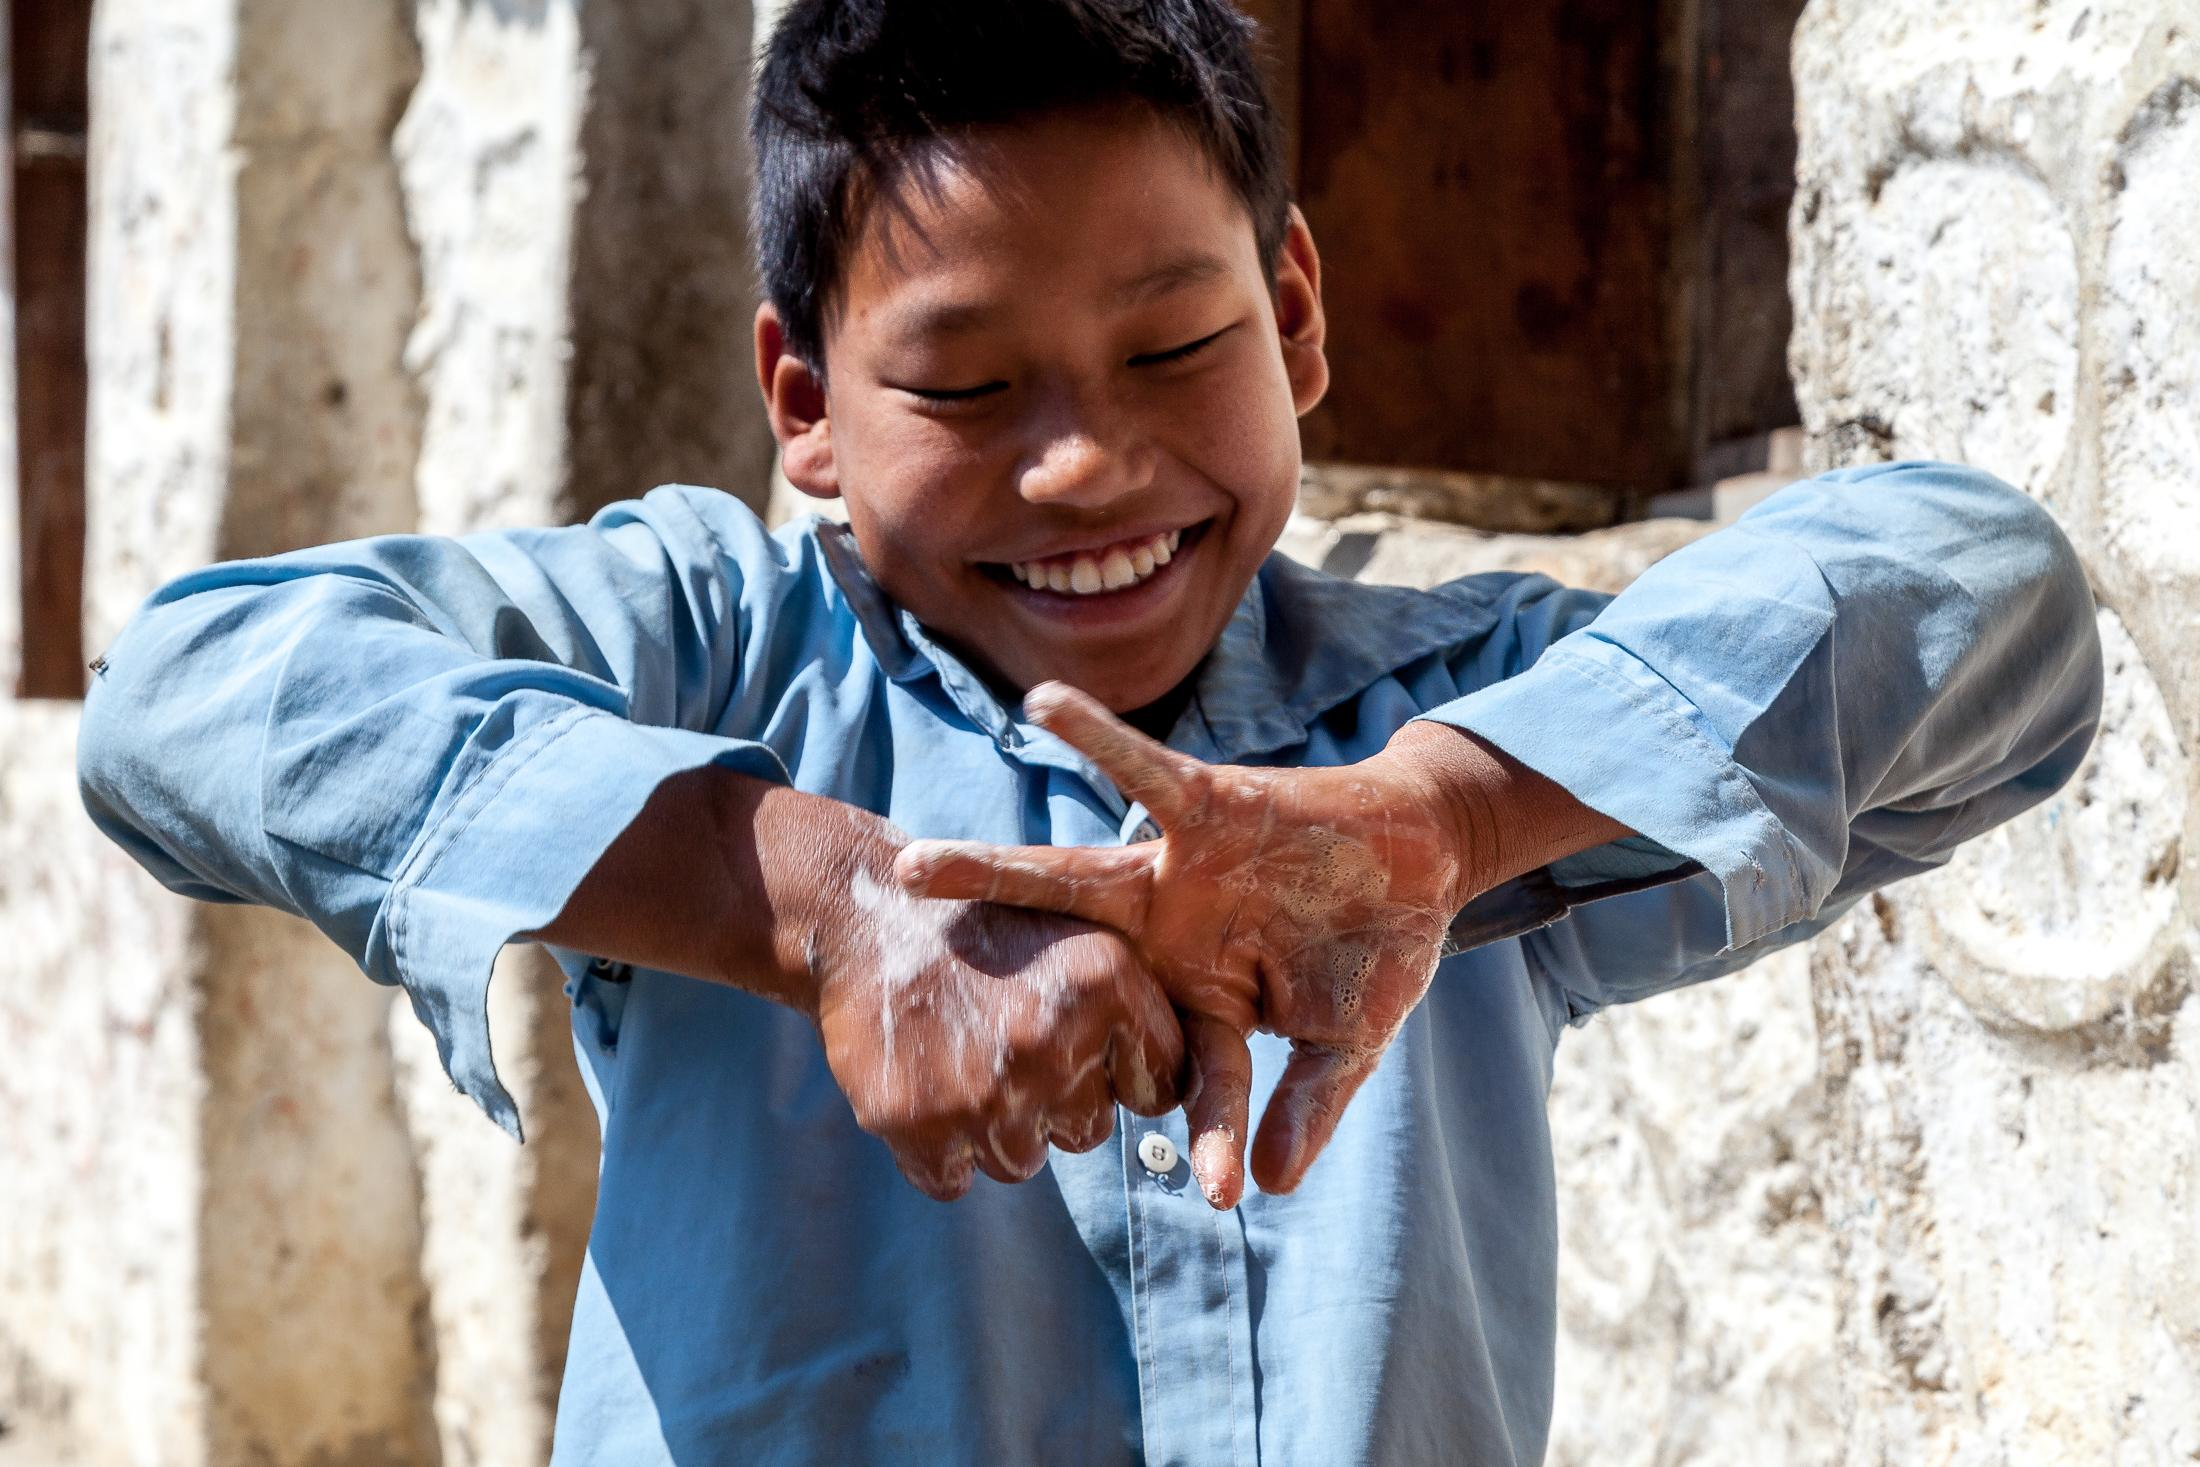 BATASE, NEPAL - FEBRUARY 27, 2015: A young student cleans his hands during an exercise in the local school organized by the NEWAH organization in Batase, Nepal on February 27, 2015. Nepal Water for Health (NEWAH) was established as a local NGO by WaterAid Nepal in 1992. Now running as an independent organization, NEWAH has reached over a million and a half people across 51 of Nepal's 75 districts, supporting communities to put in place comprehensive water and sanitation facilities. Photo: © Omar Havana for WaterAid Nepal